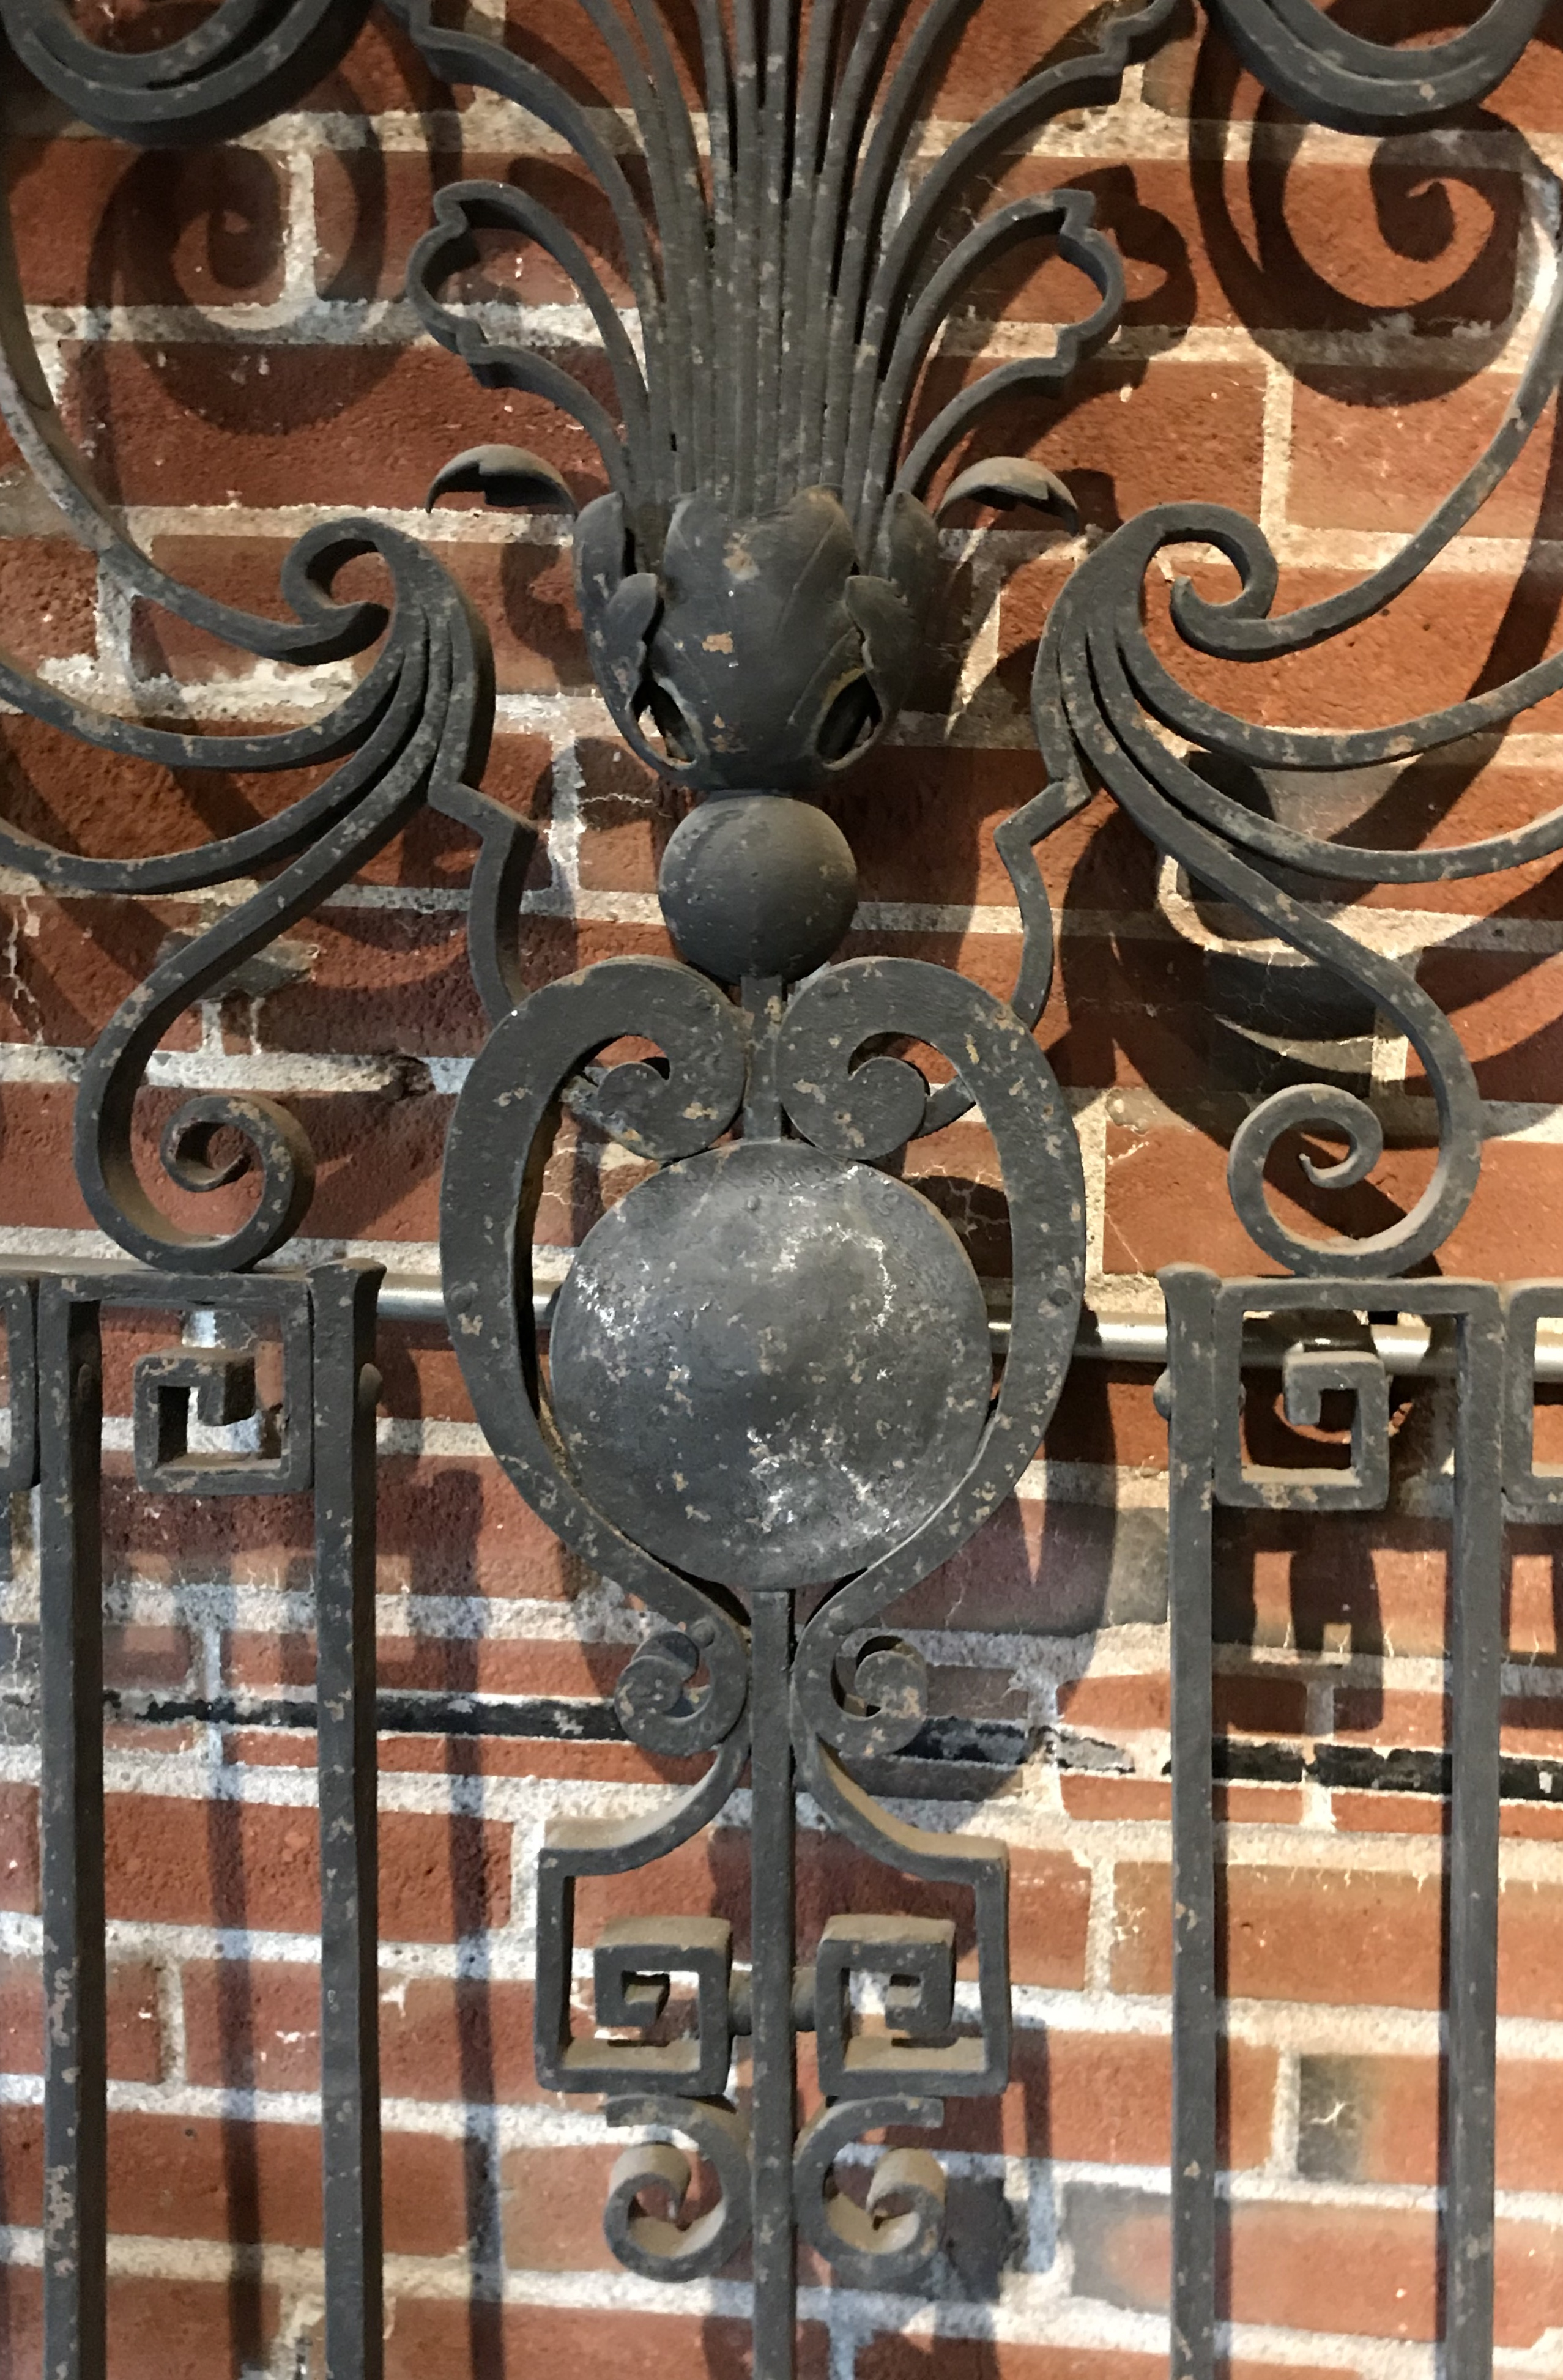 Detail of wrought iron gate.